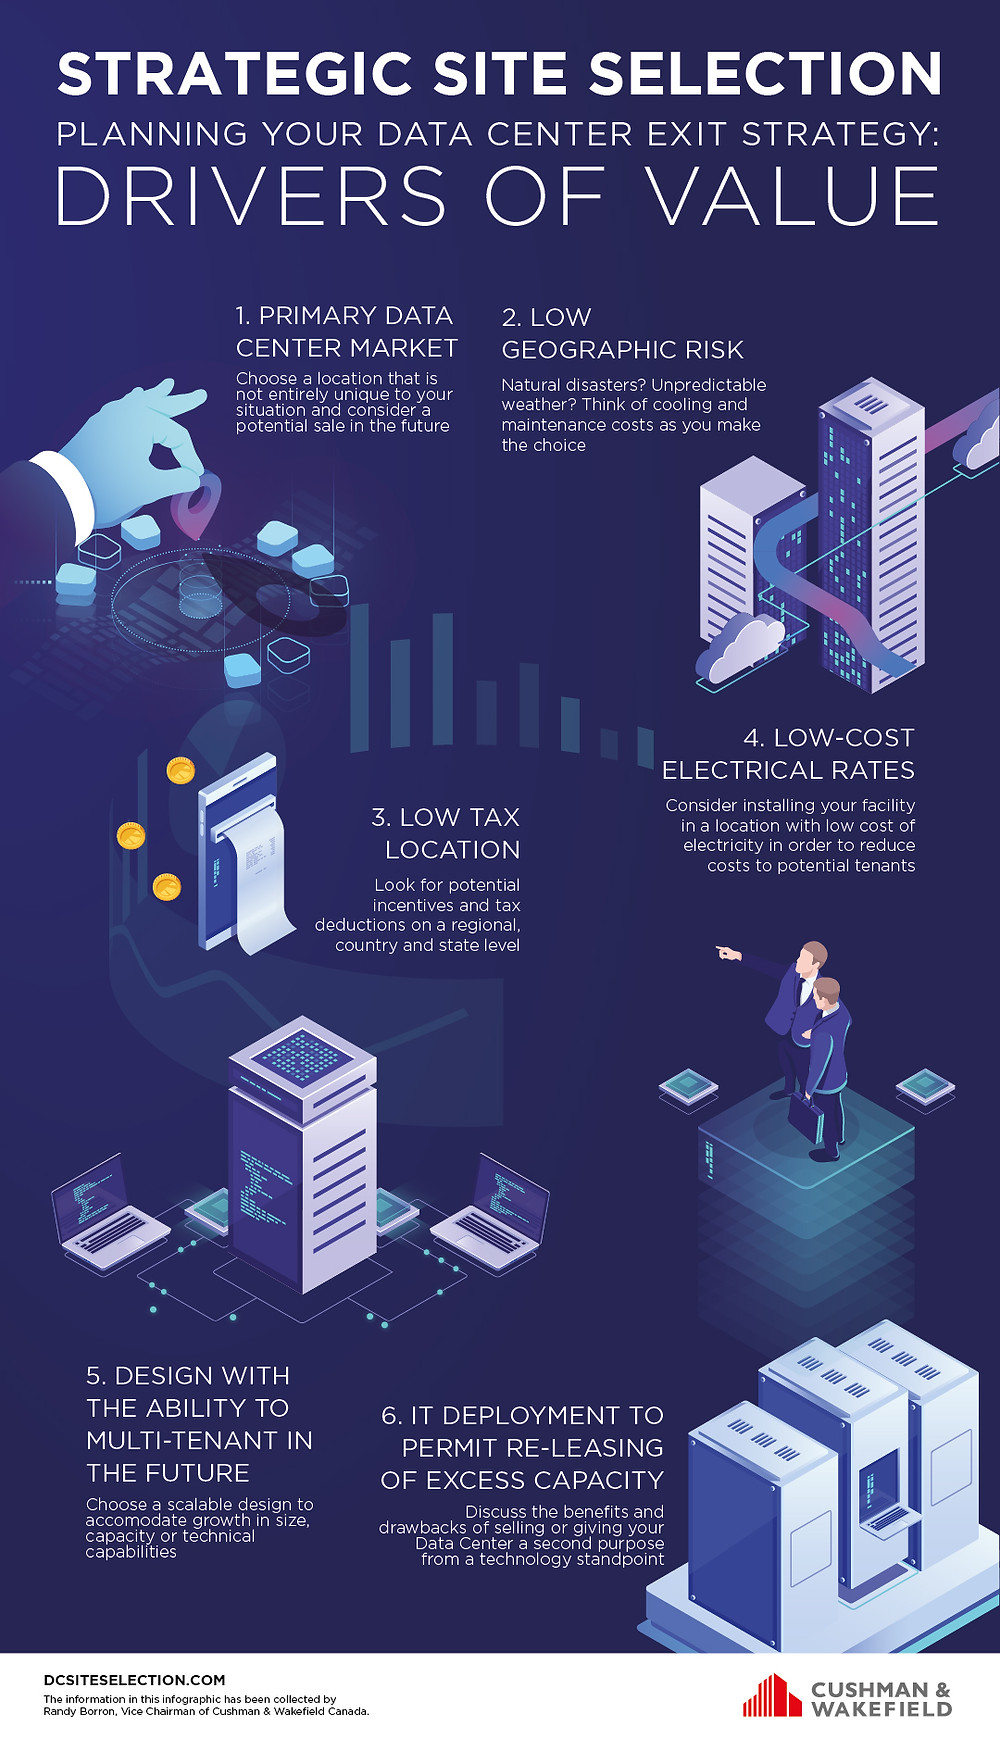 an infographic on the 6 key drivers of value that motivate site selection